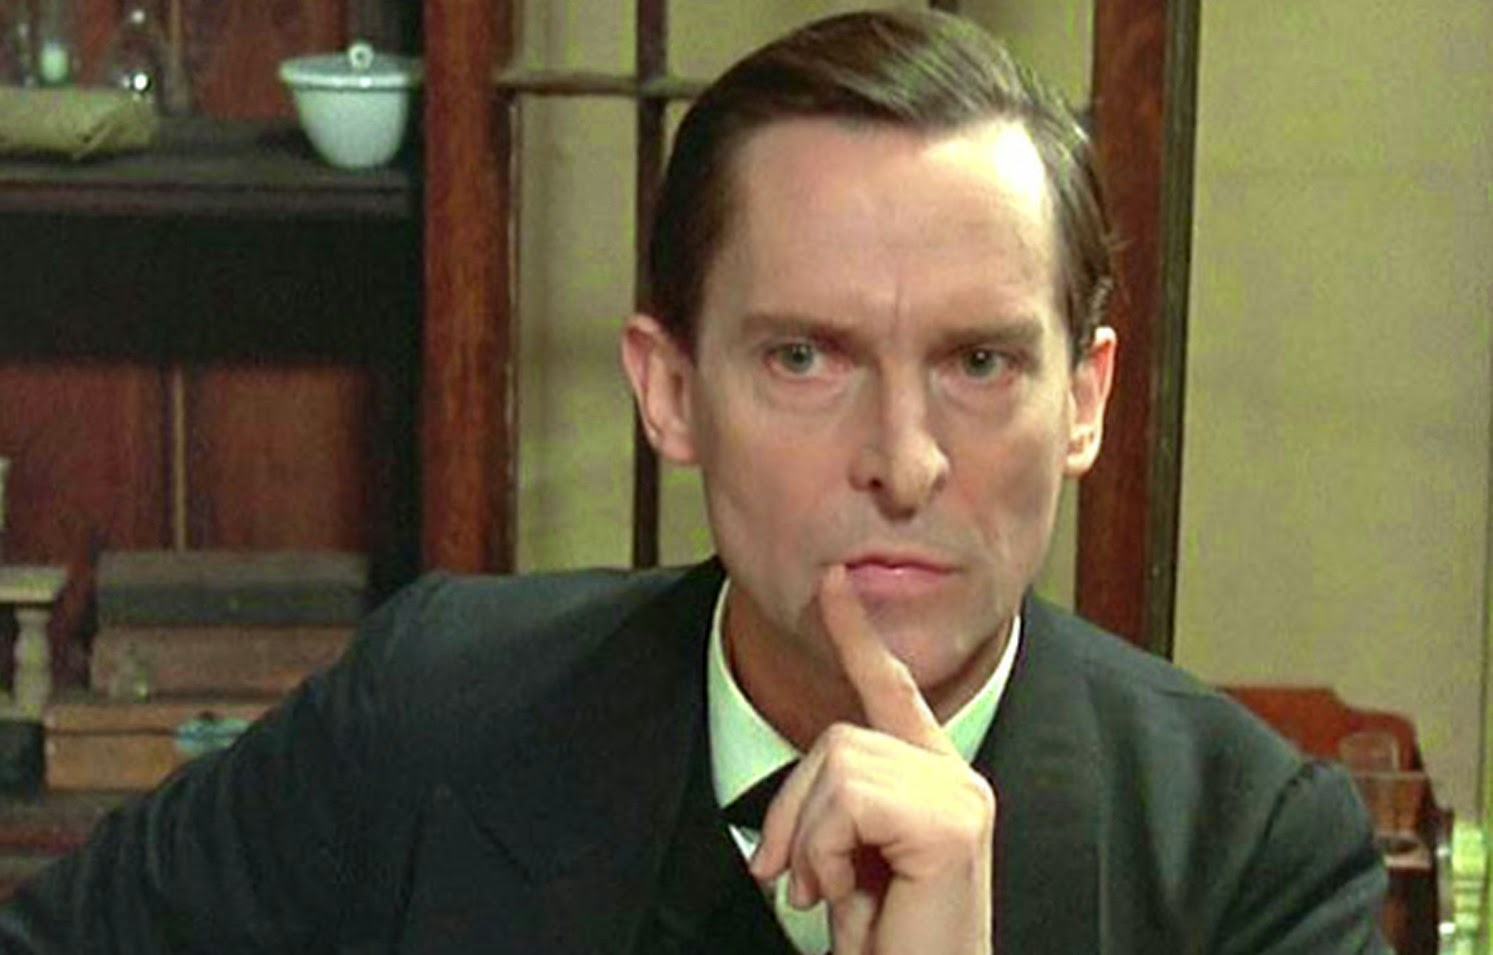 From Gillette to Brett IV gave Jeremy Brett something to think about